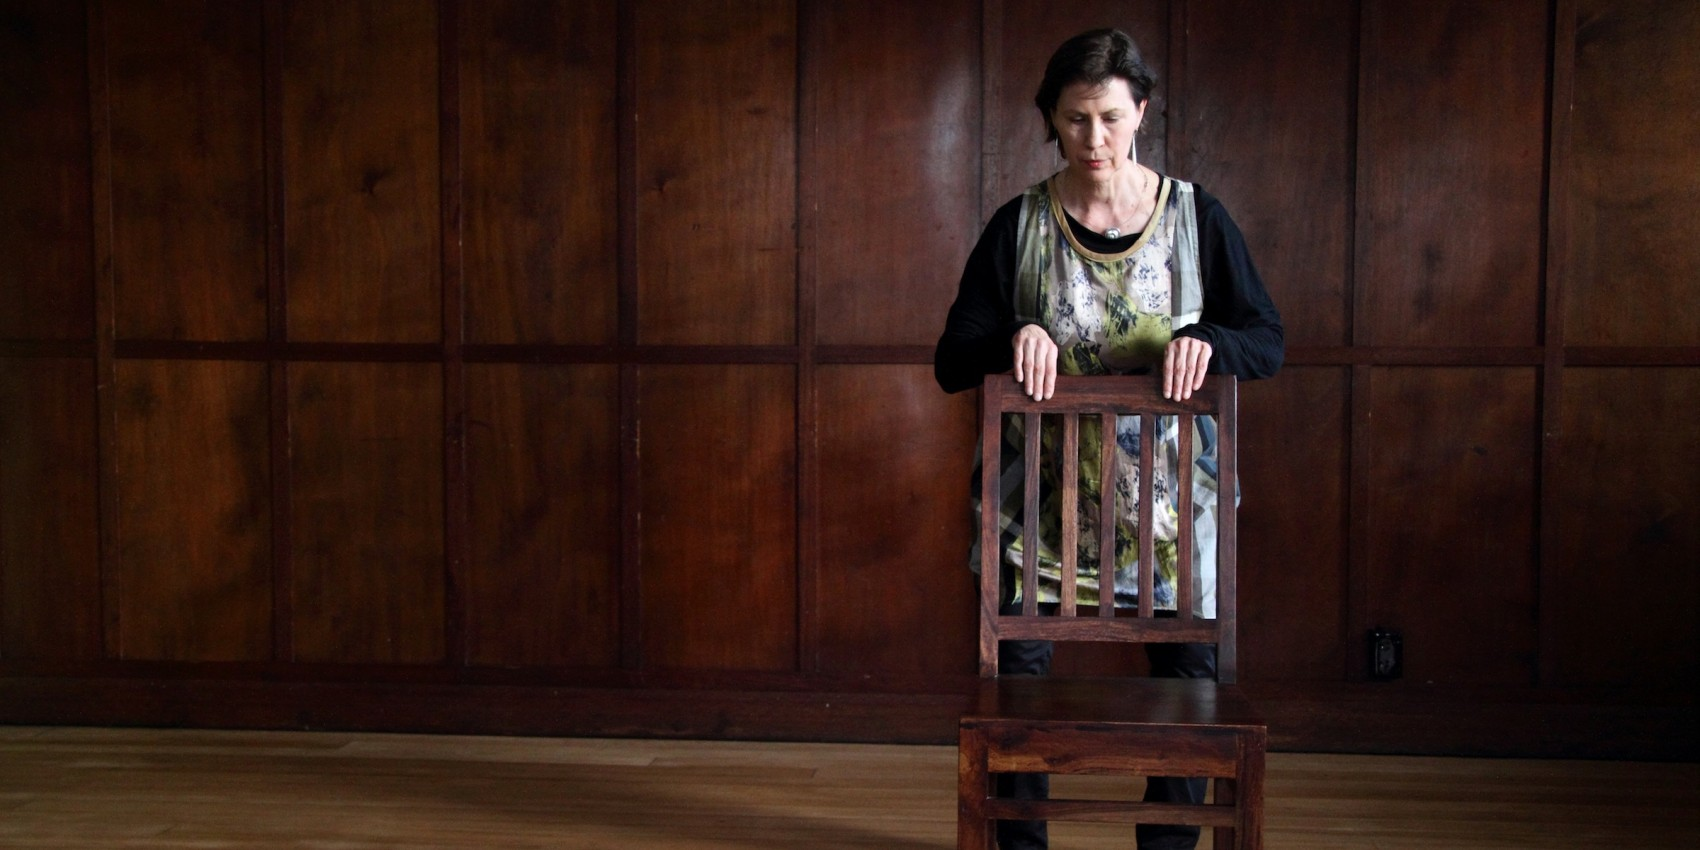 Promo image of a woman standing behind a wooden chair